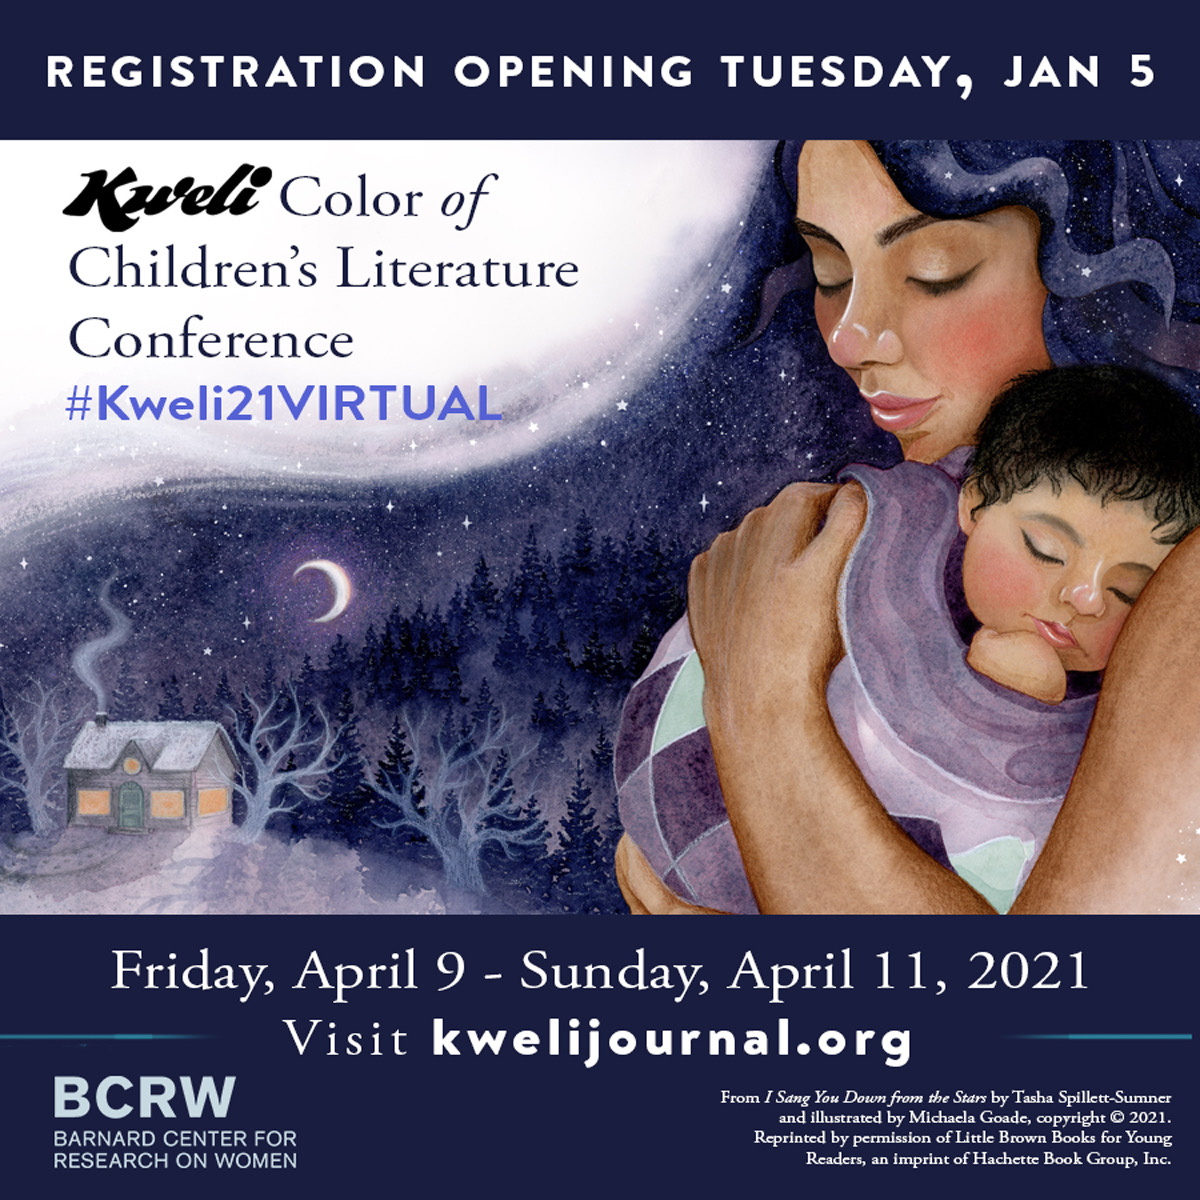 The wait is over. #Kweli21VIRTUAL